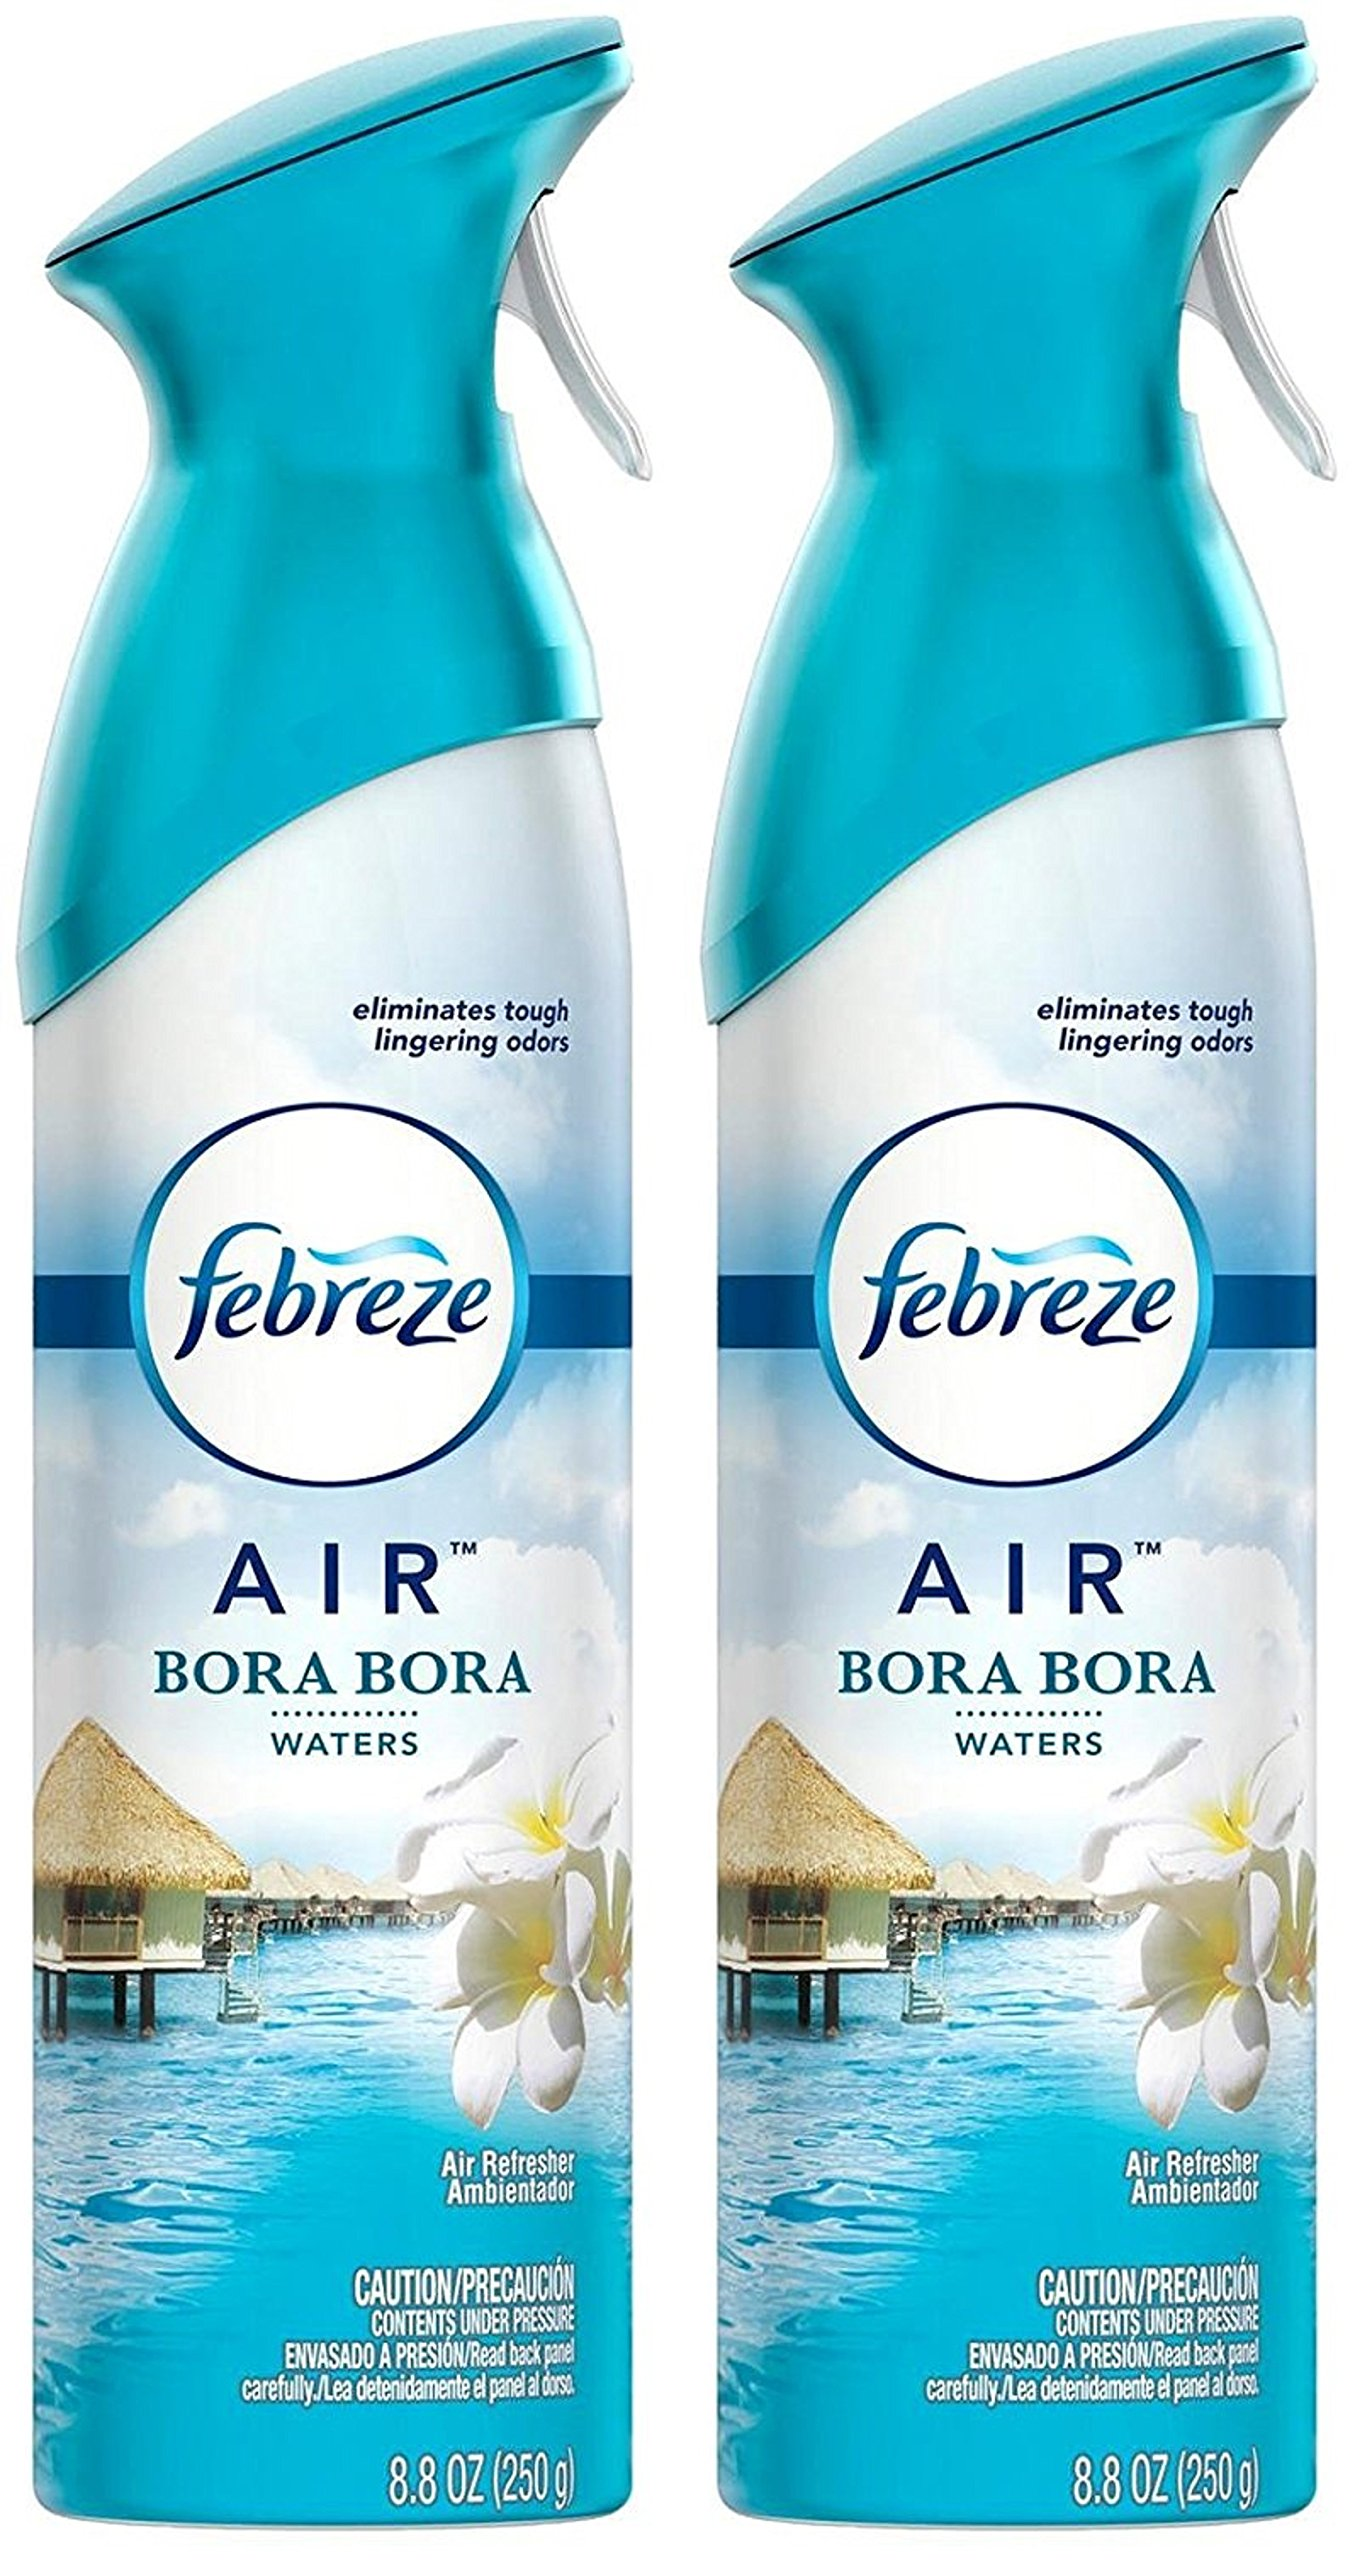 Febreze Air Refresher Spray - Bora Bora Waters - Net Wt. 8.8 OZ Per Bottle - Pack of 2 Bottles